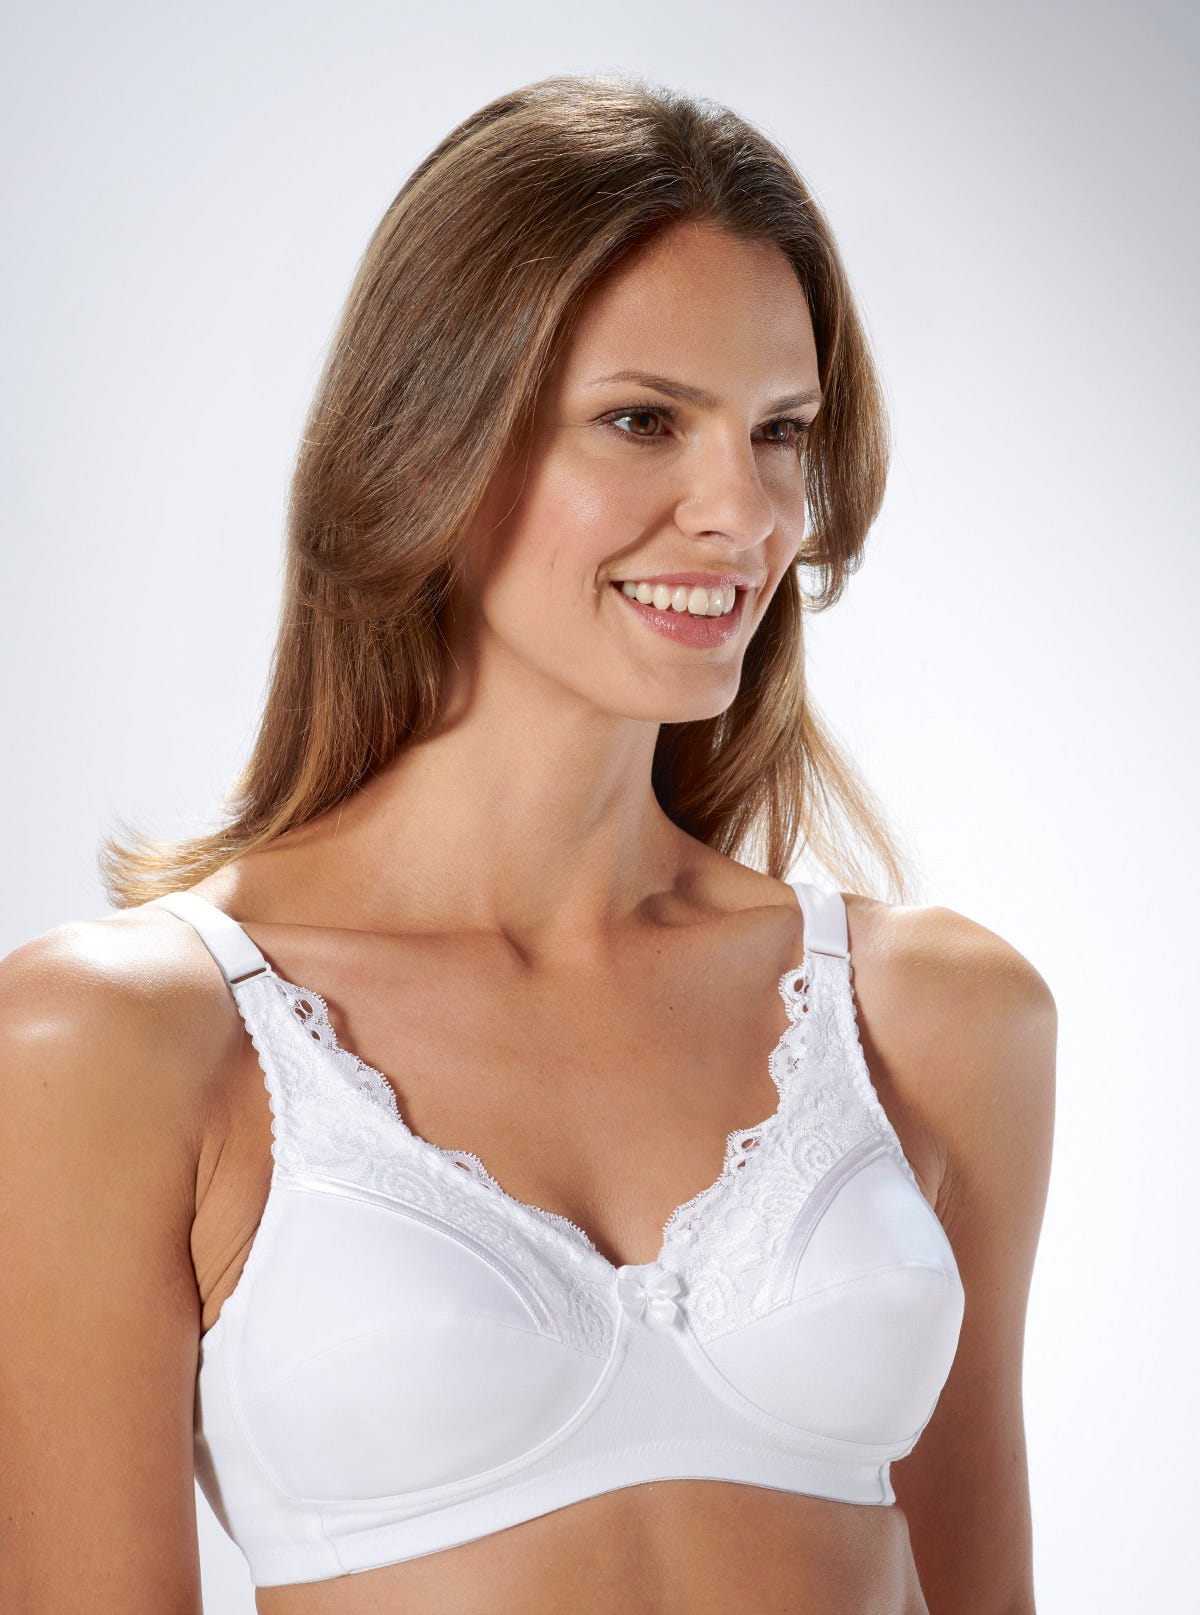 Cotton-lined Comfy Bra by Royce - Bras - Lingerie  302a531bf